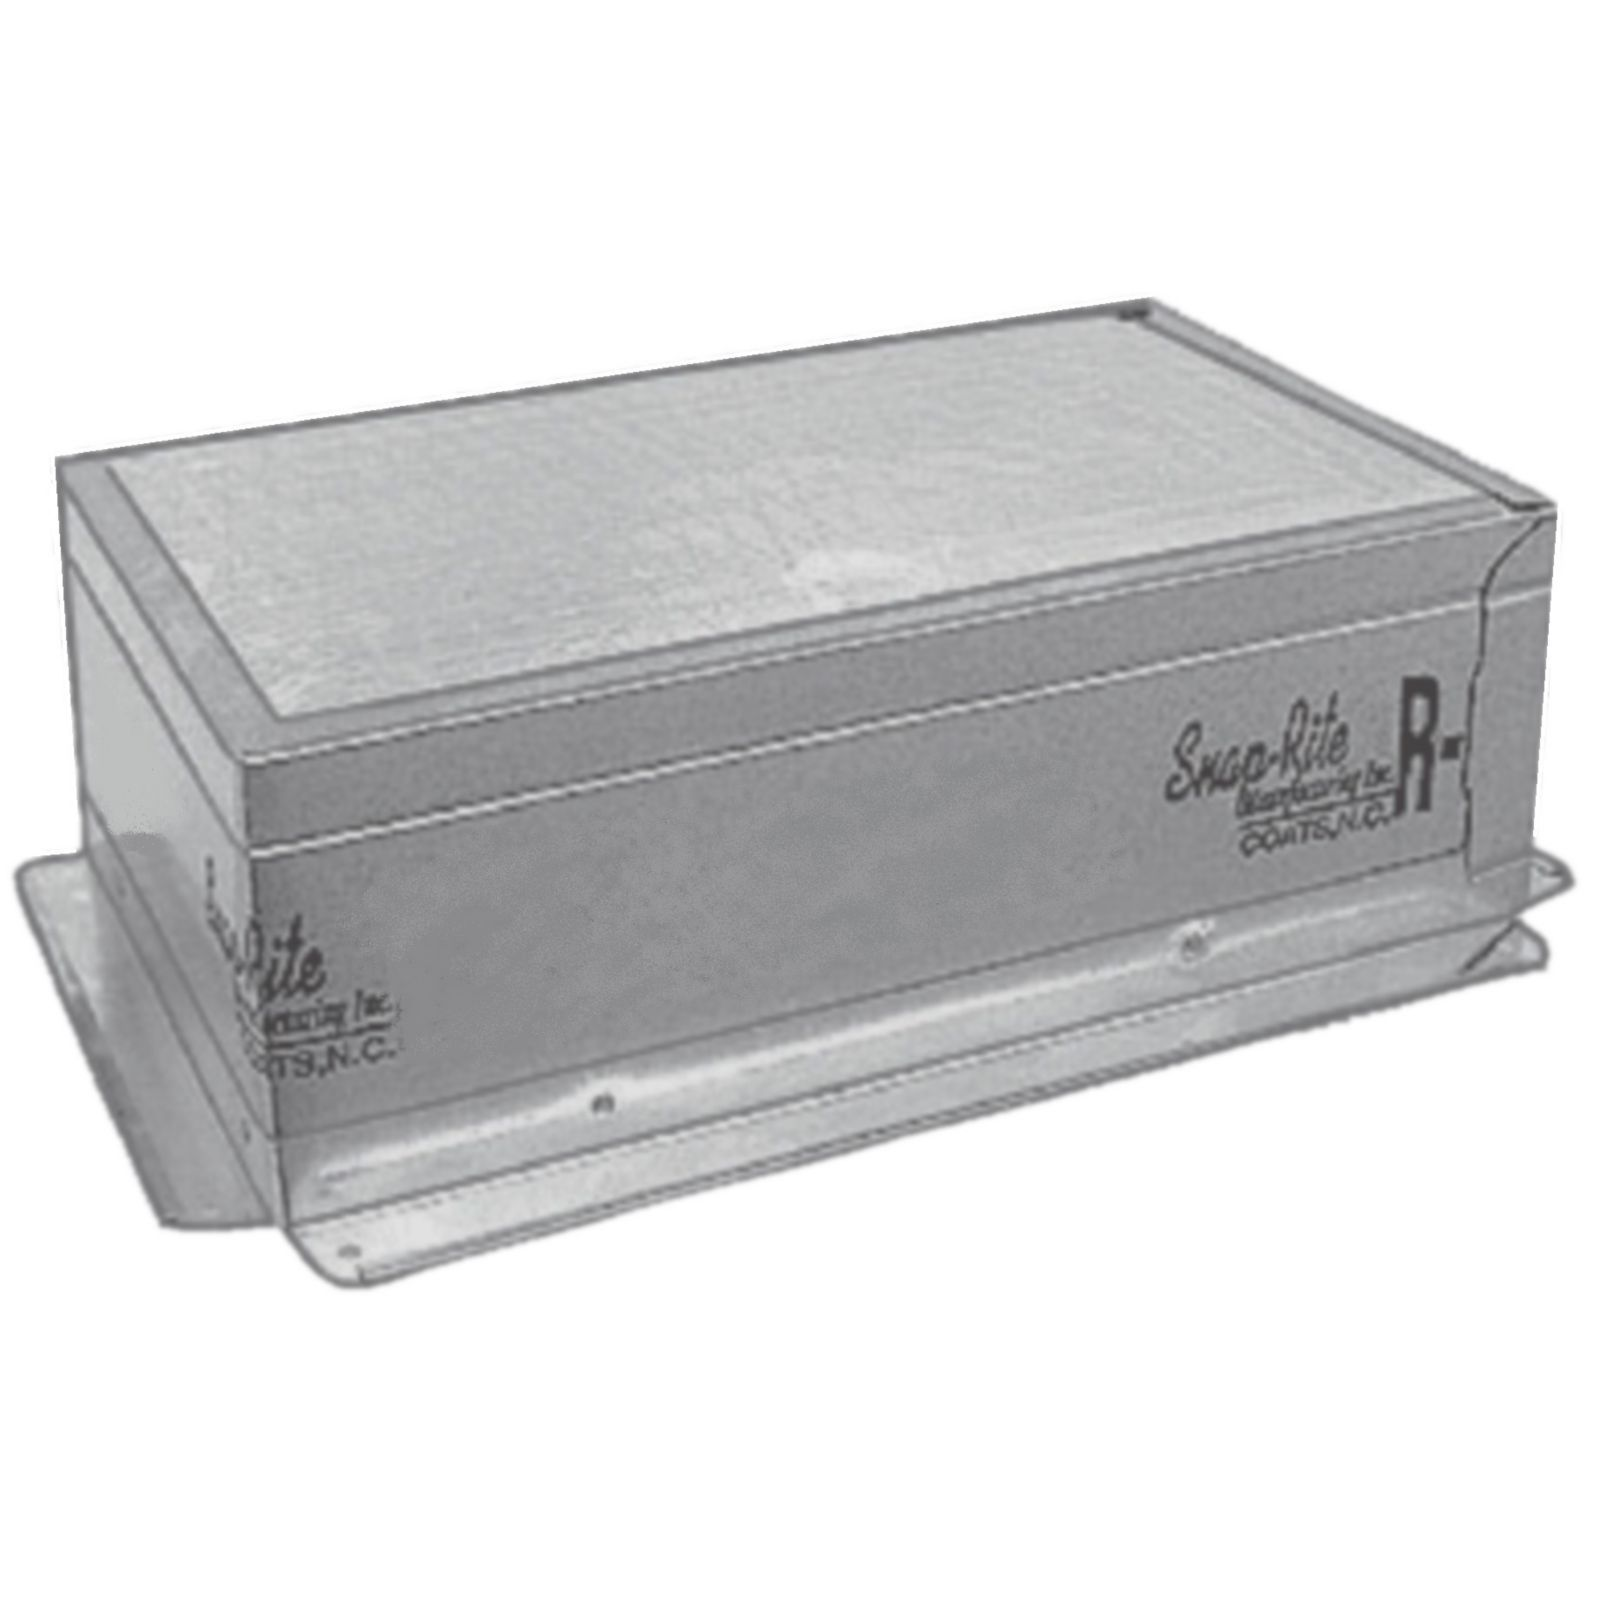 "Snap-Rite 14X14-3800F8 -  Foil Top Insulated Register Box With Flange, 14"" x 14"" - R8"